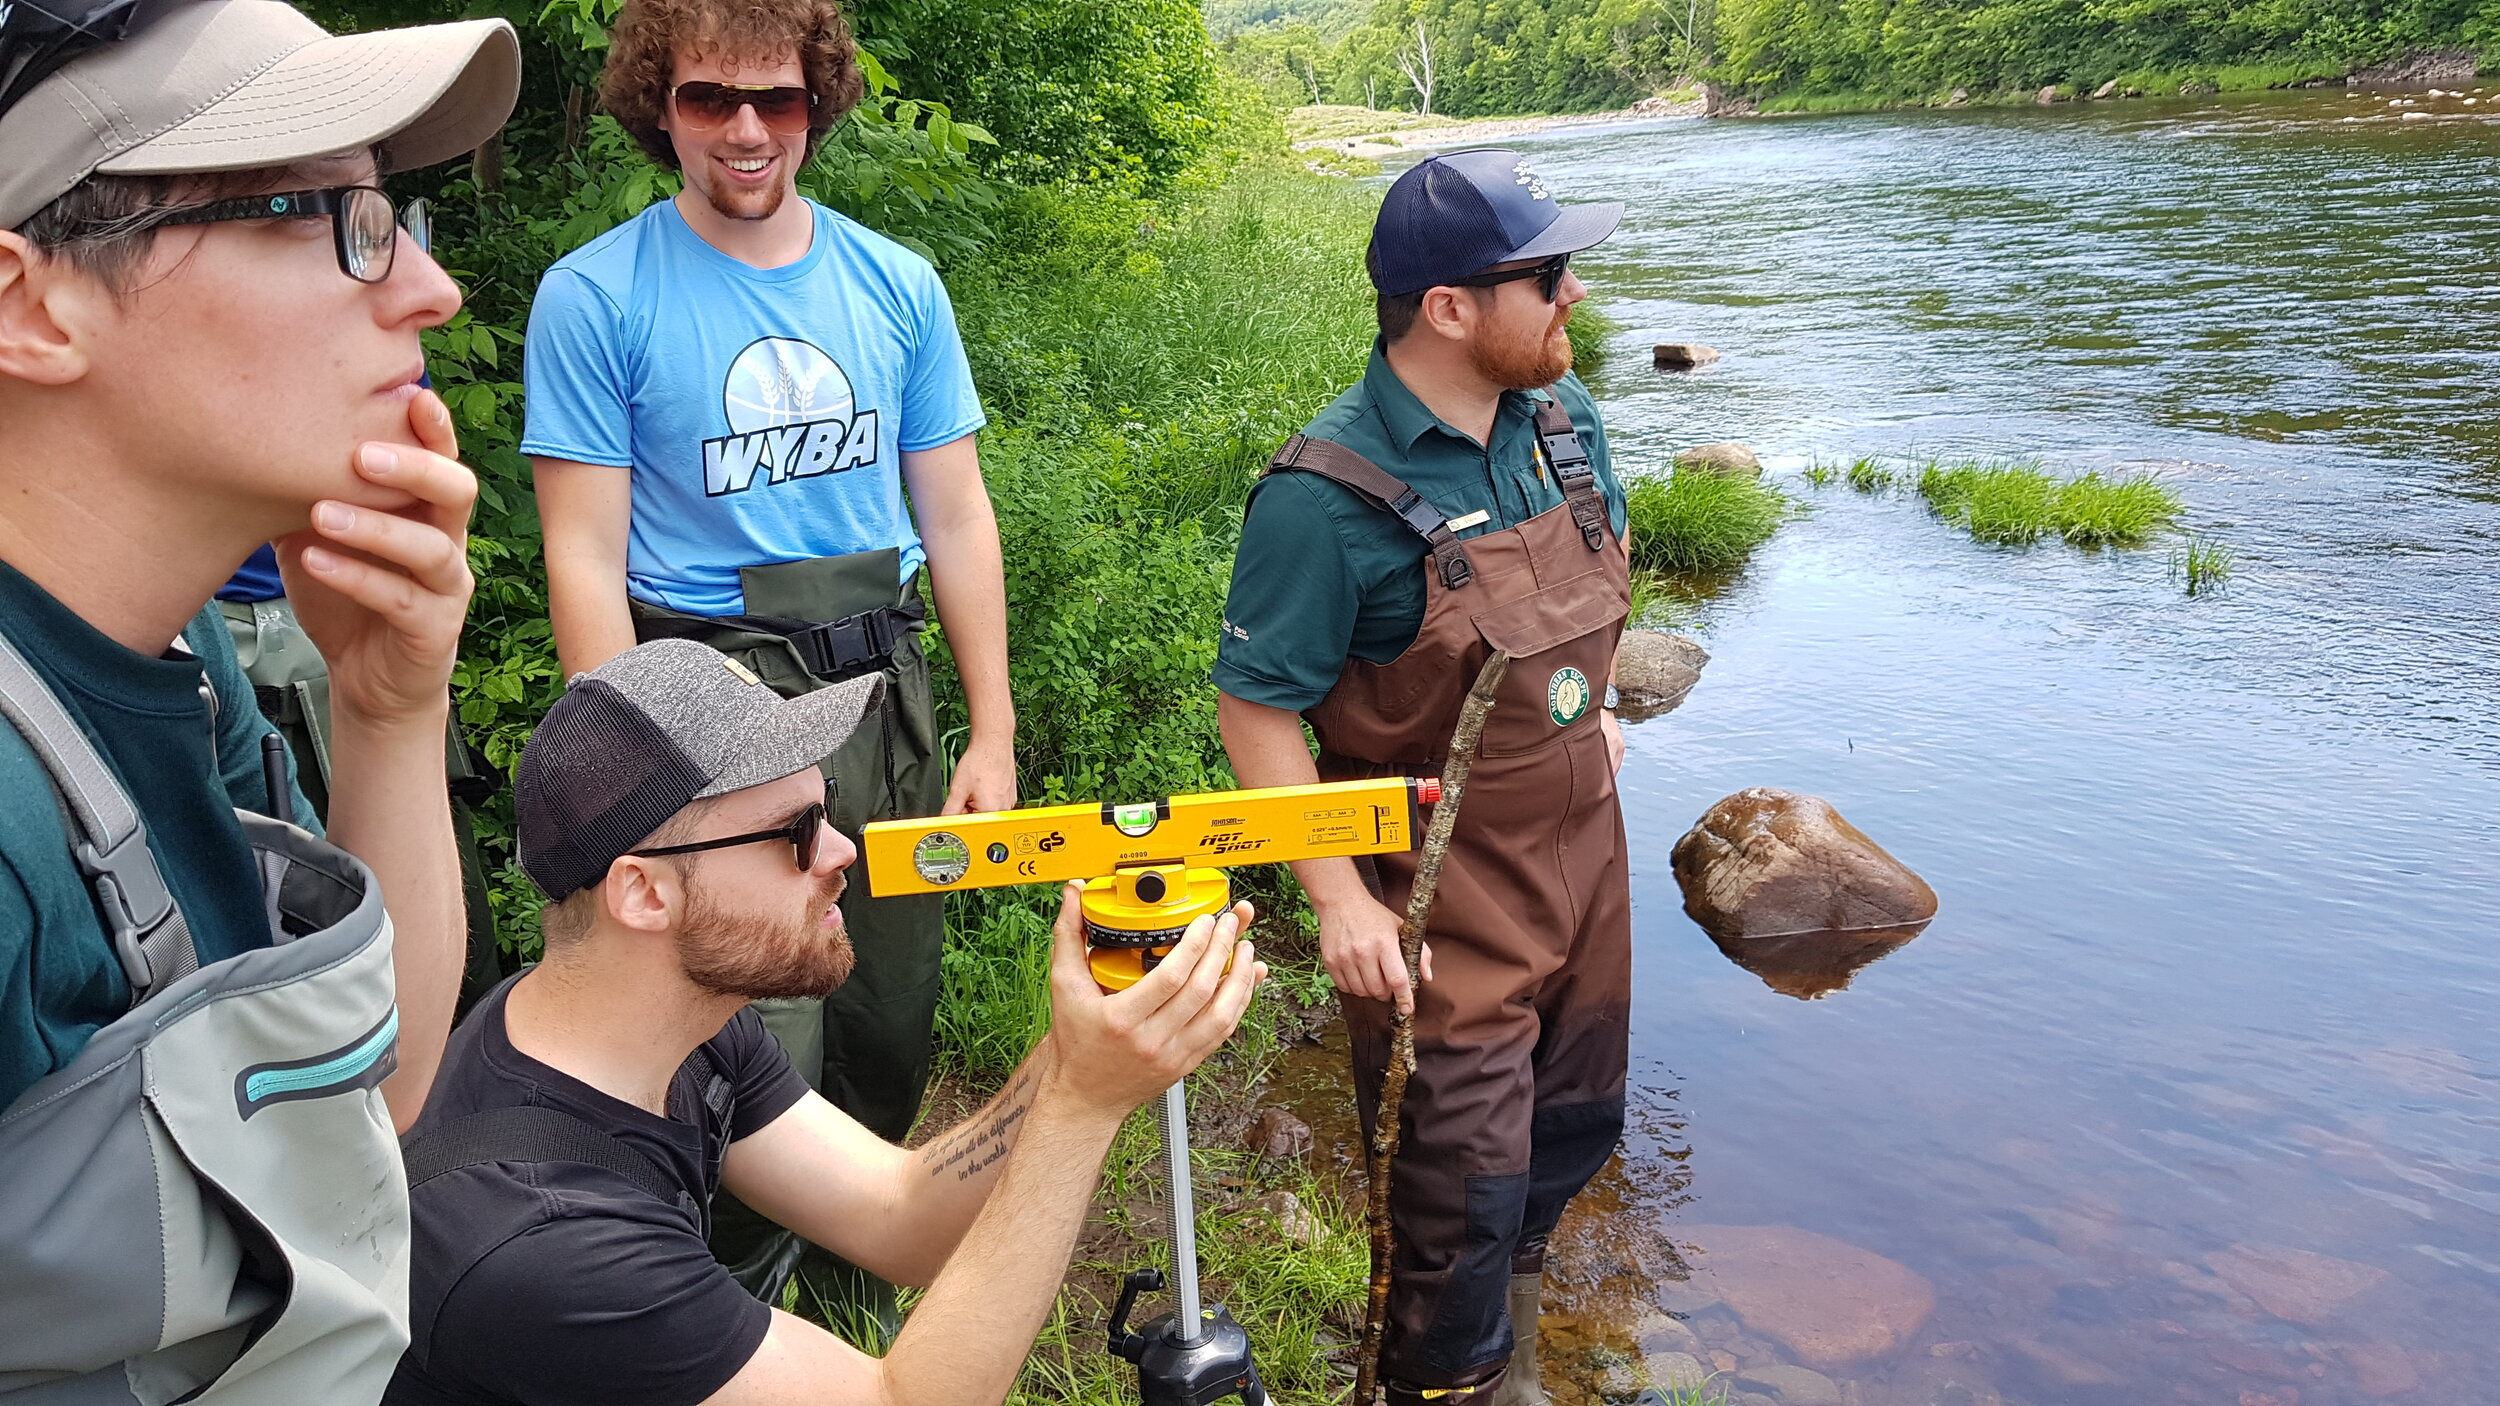 CRSA and Parks Canada staff working together to collect elevation data as part of habitat assessments on Cheticamp River